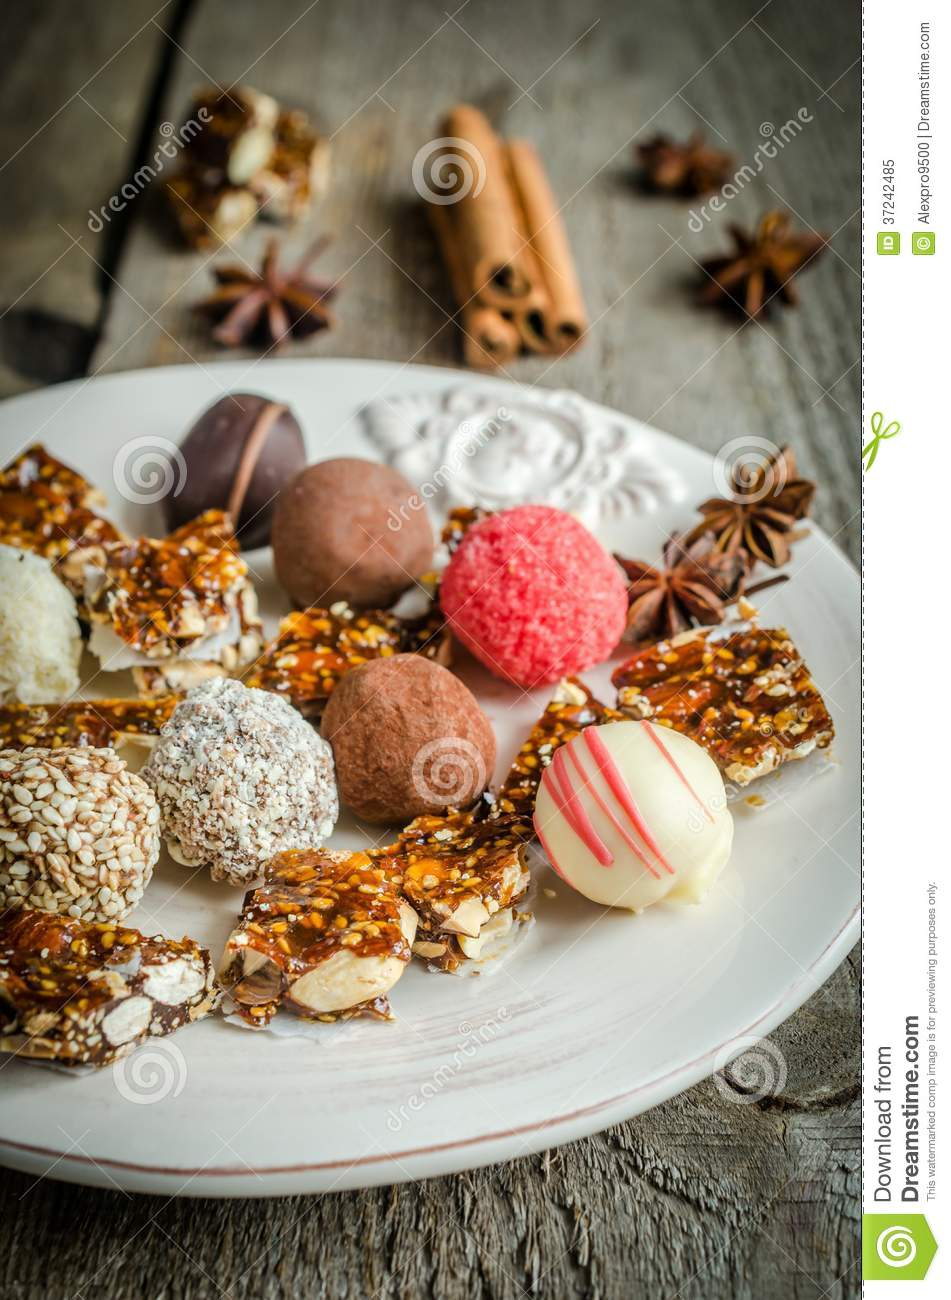 Doces de chocolate com partes do turron